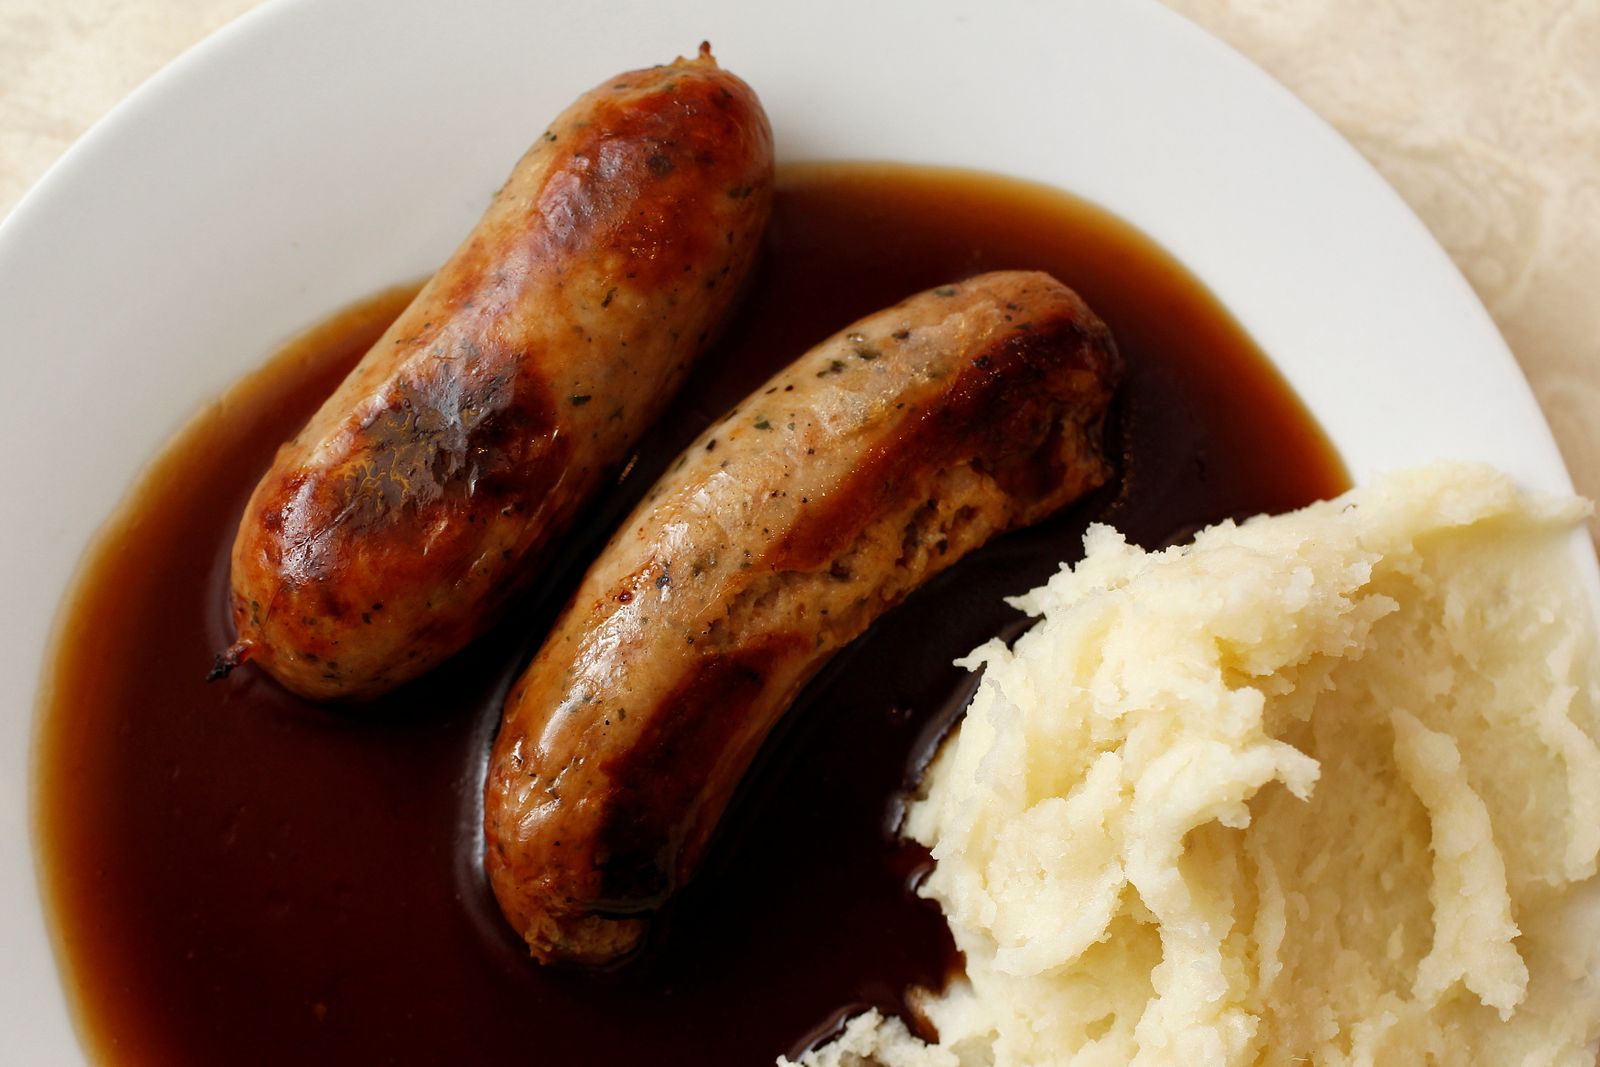 FILE PHOTO: A traditional British meal of sausages and mashed potato in gravy, known as Bangers and Mash, is pictured in G. Kelly's pie and mash shop in east London